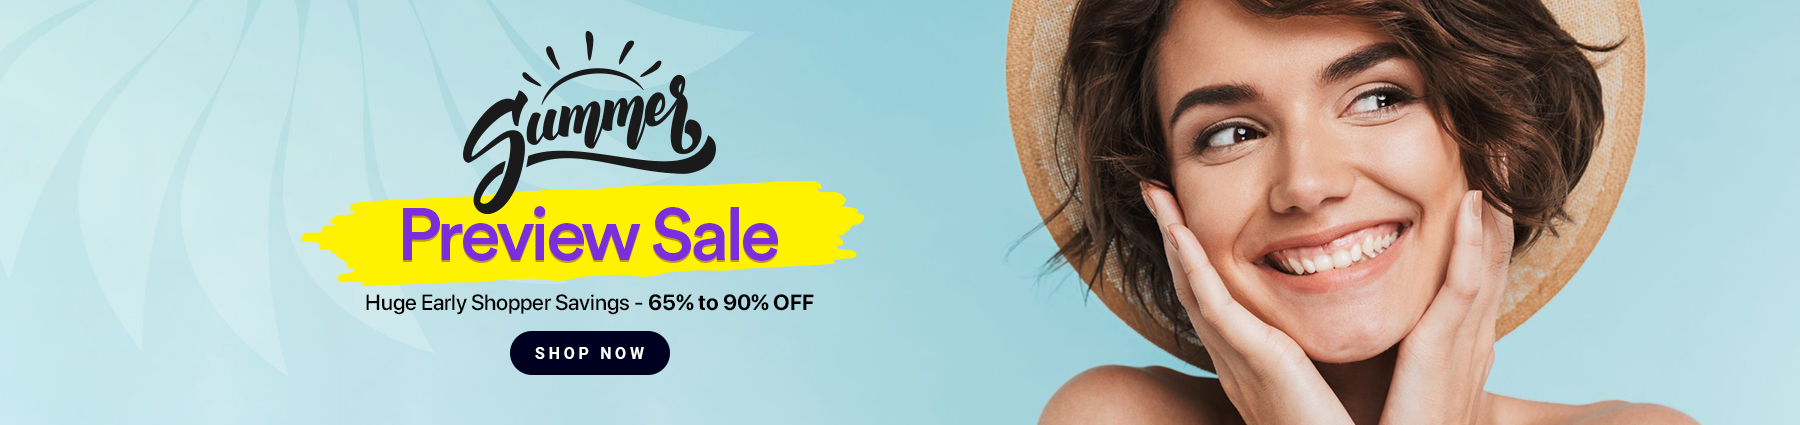 Summer Preview Sale